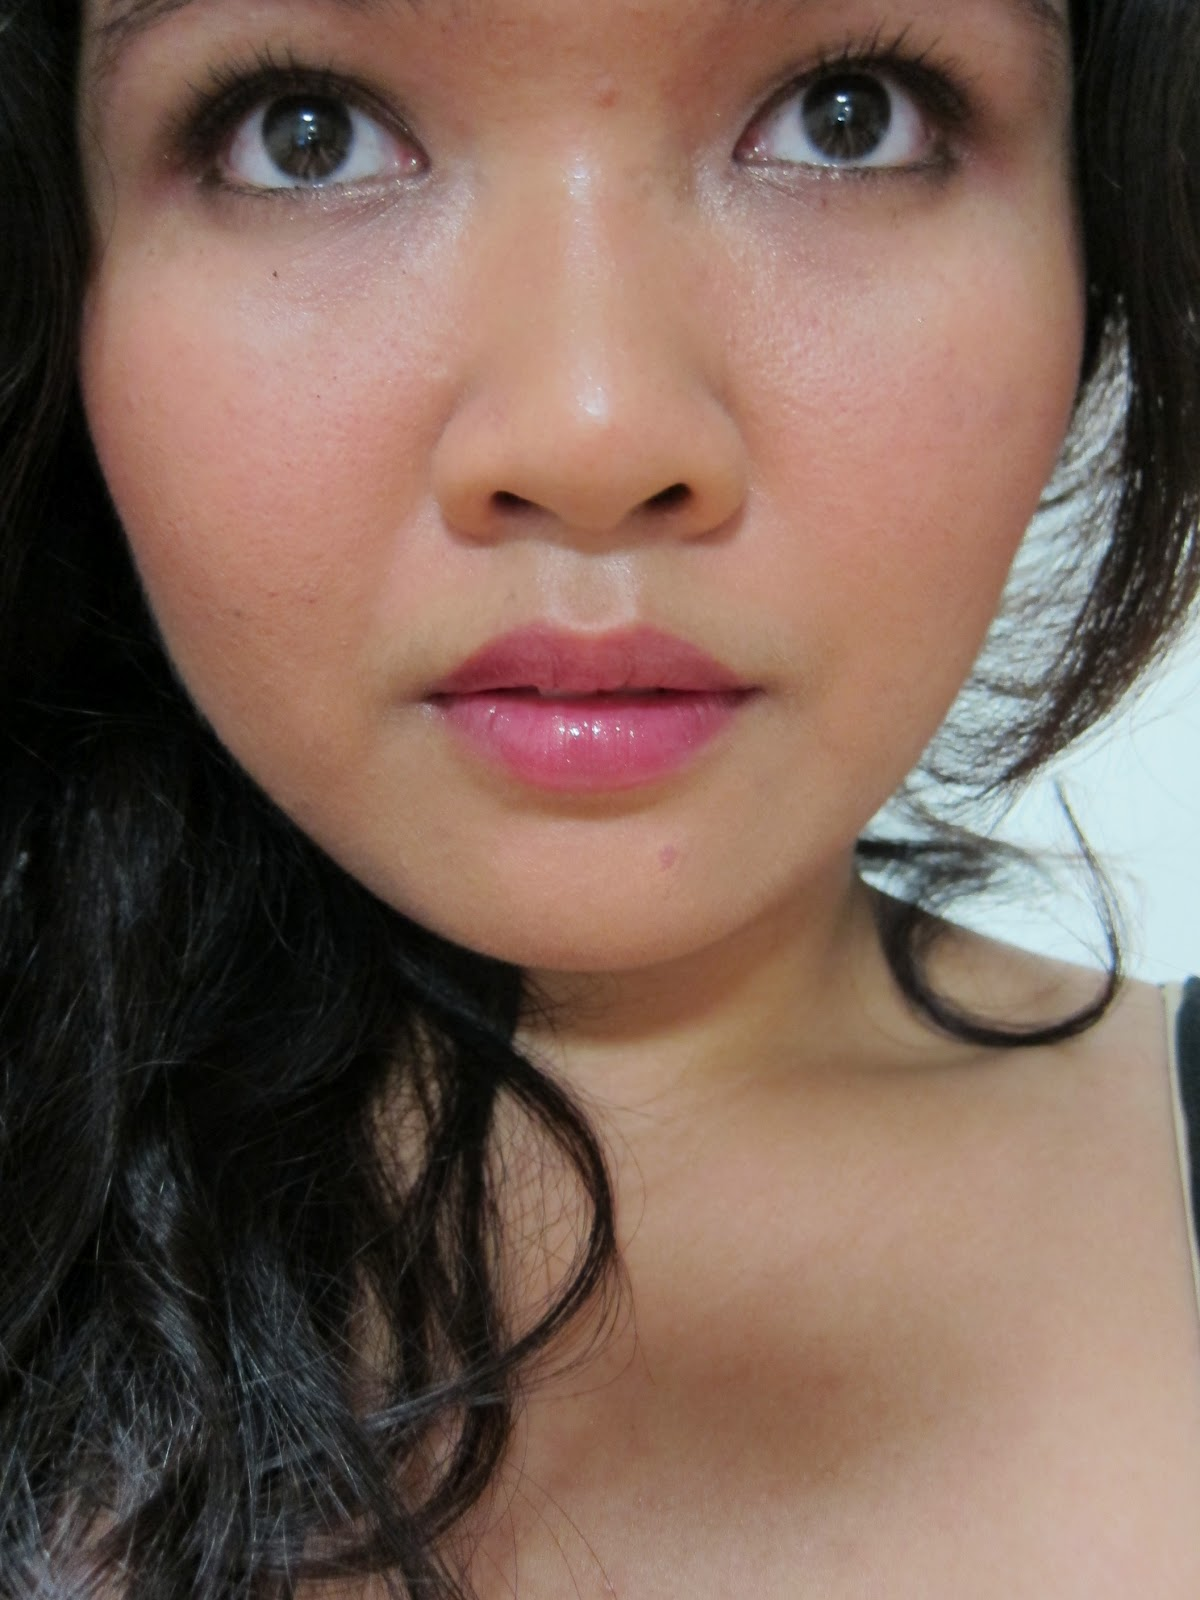 Makeup Post Youtube: A Girl's Guide To Makeup: FOTD Post